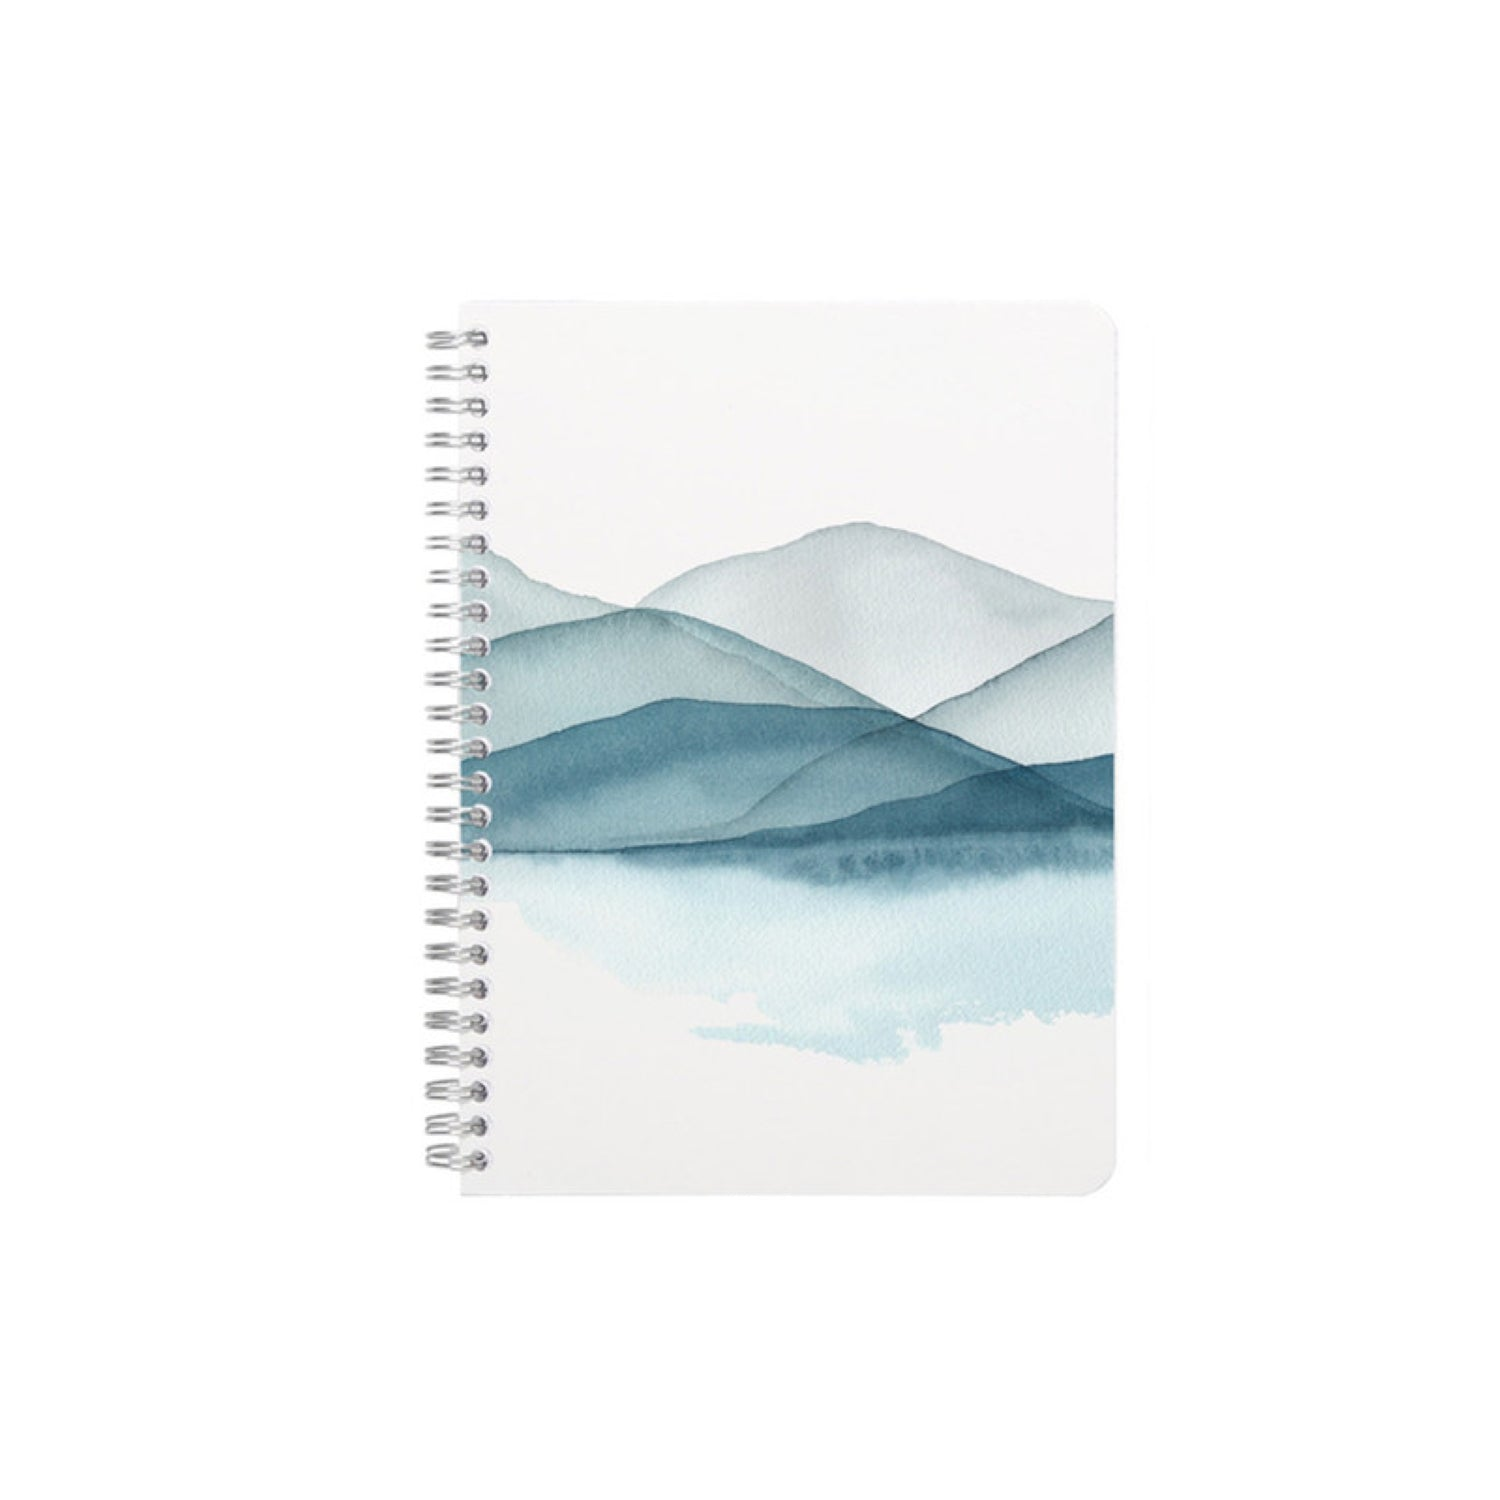 Clairefontaine La Vie en Vosges Collection Notebook Spiral Bound A5 Ruled - Landscape